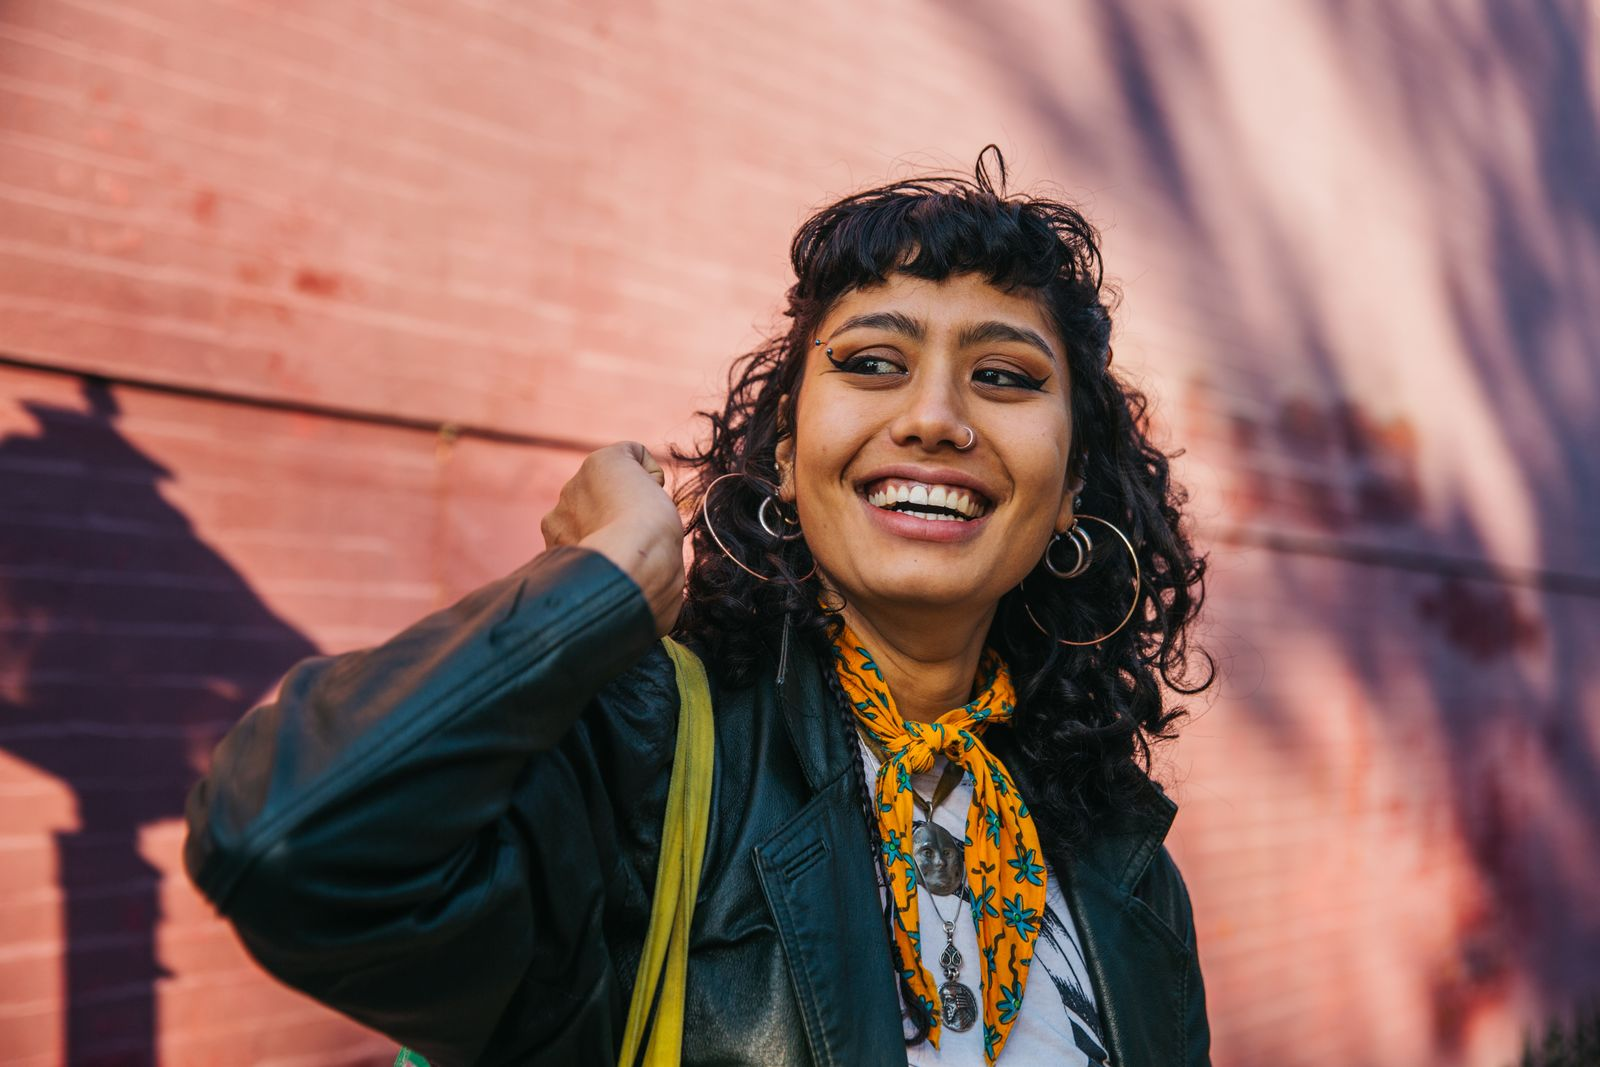 Young confident woman smiling